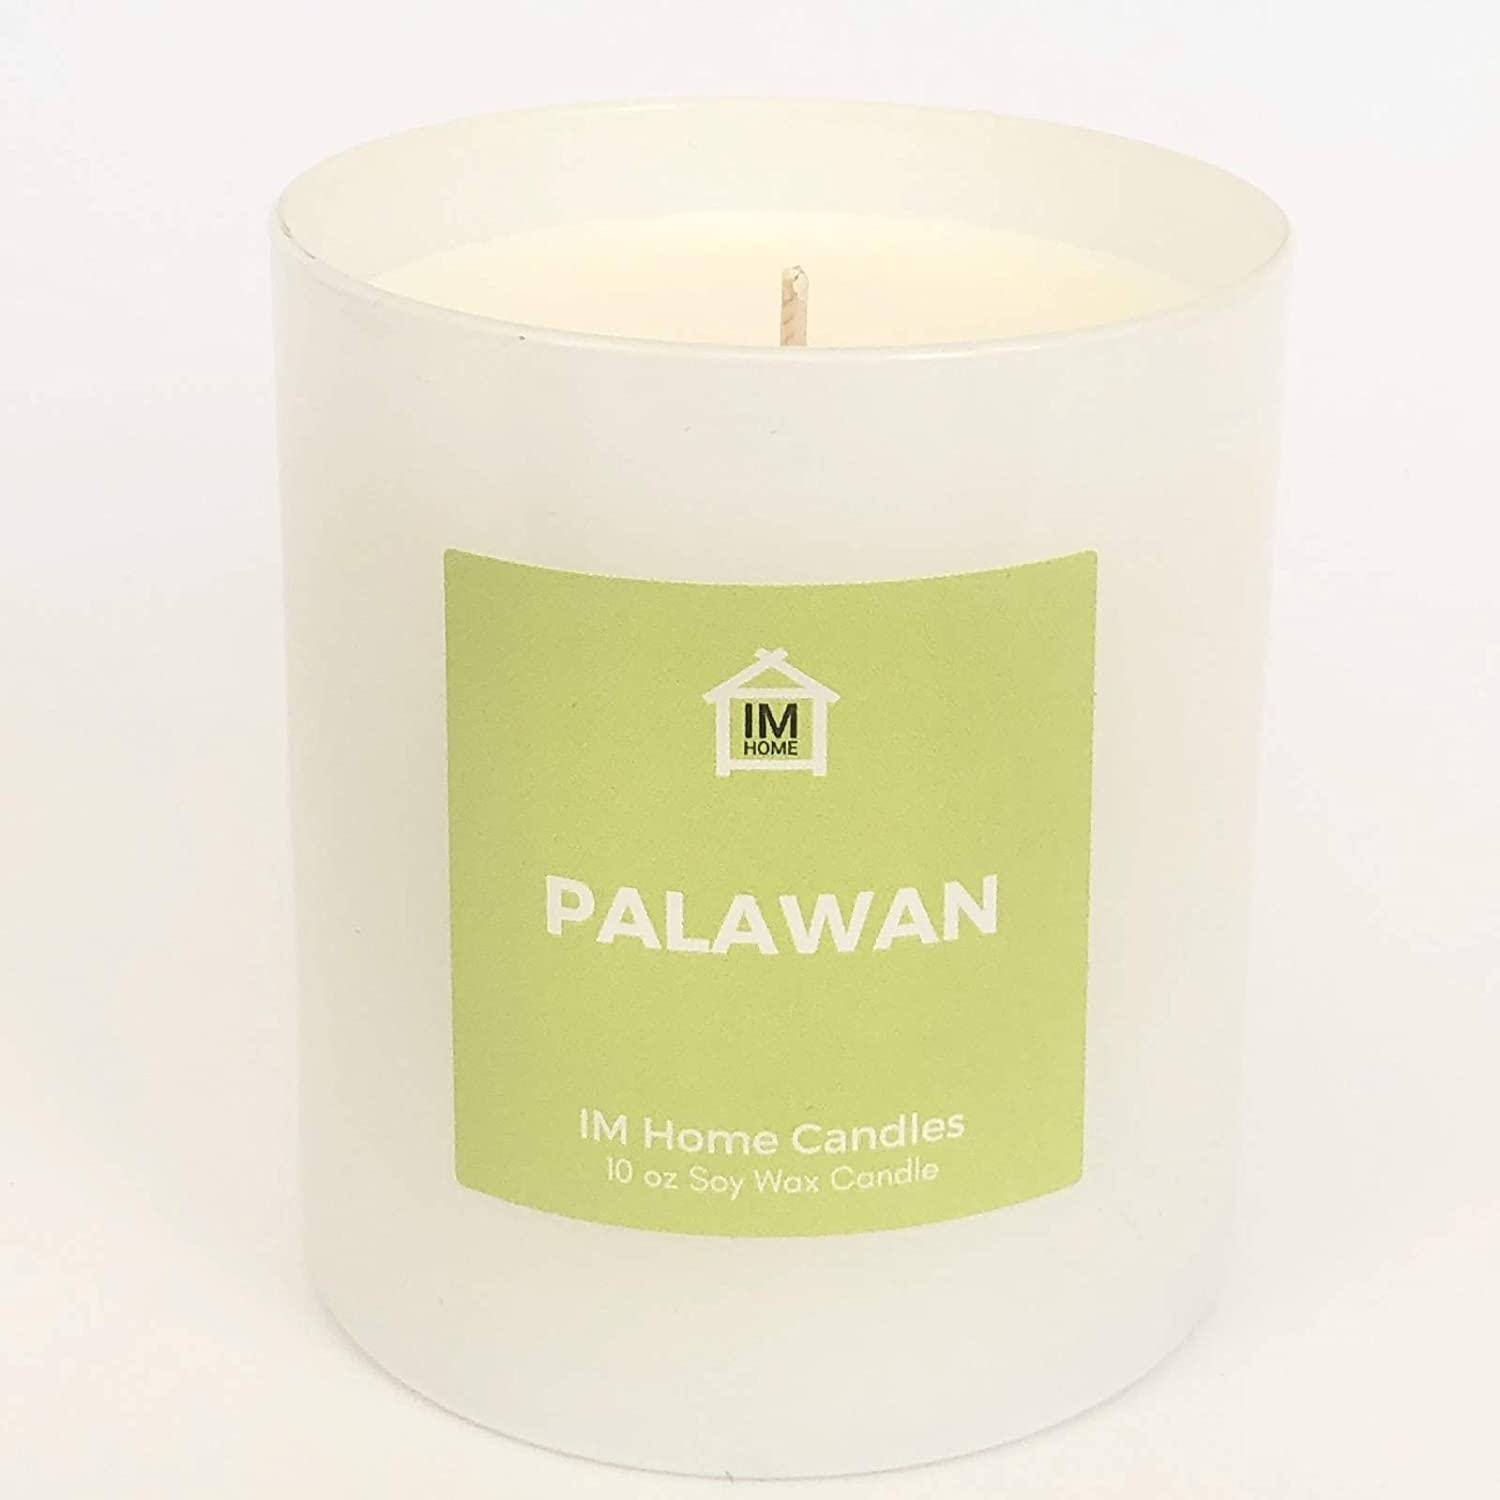 Palawan Scented Candle, 10 Oz Natural Soy Wax, Hand-Poured in a Reusable White Jar, Relaxation Aromatherapy, Bamboo and Coconut